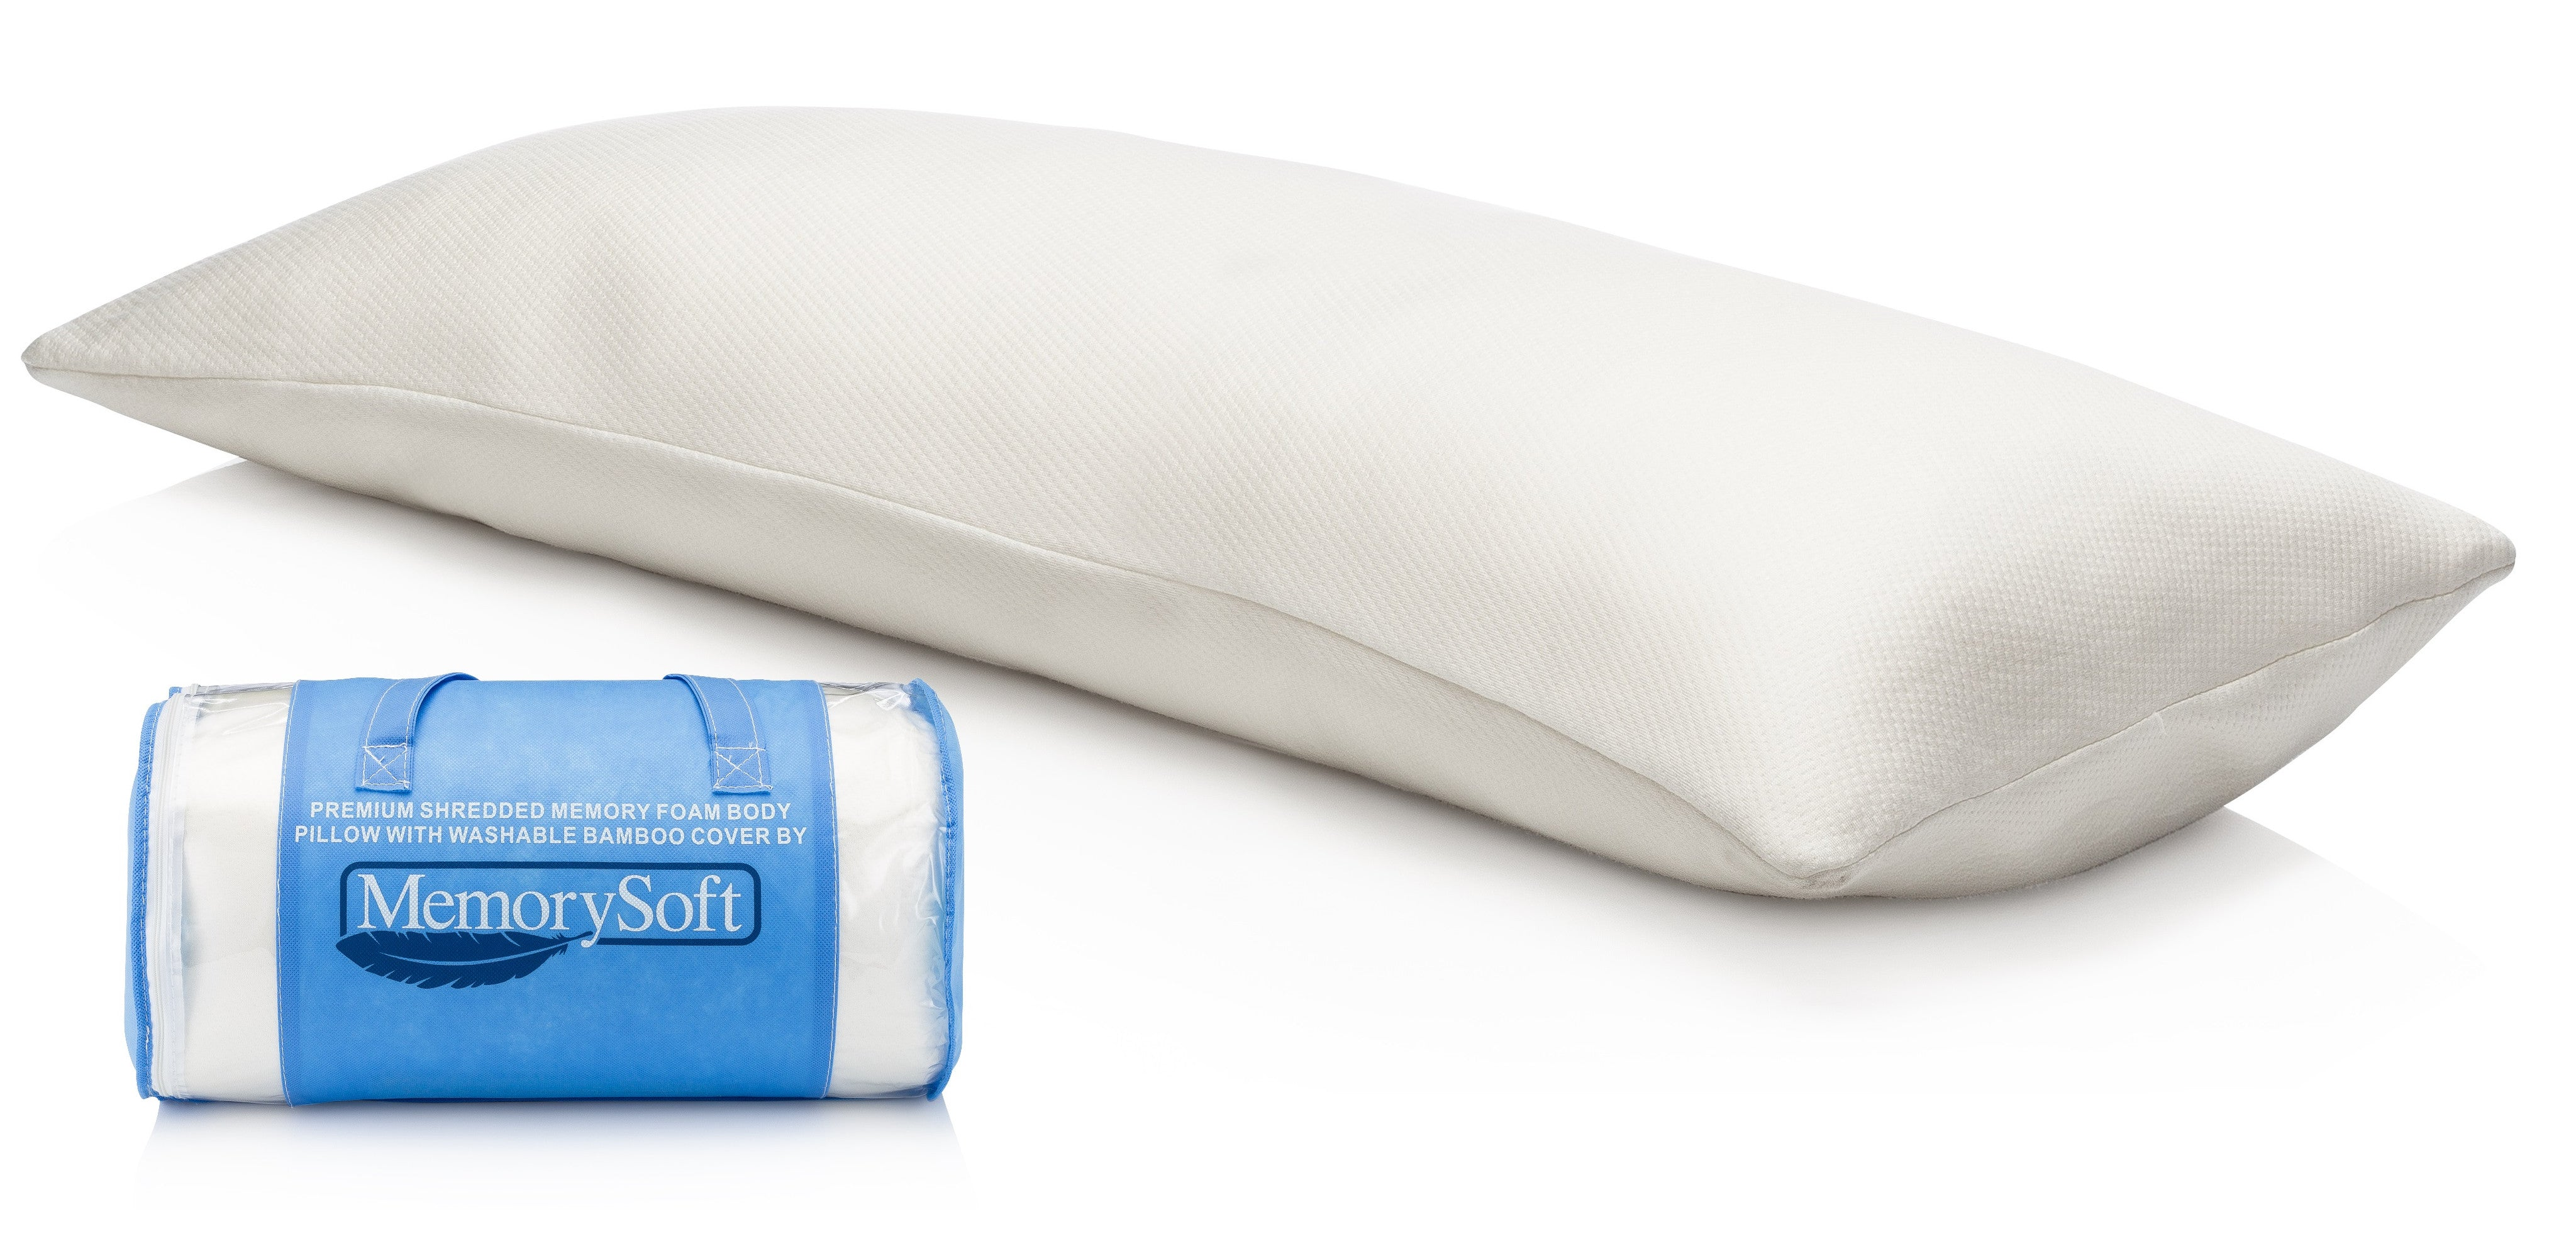 foam sleep goods review home bamboo guaranteed coop shredded for memory pillow better body